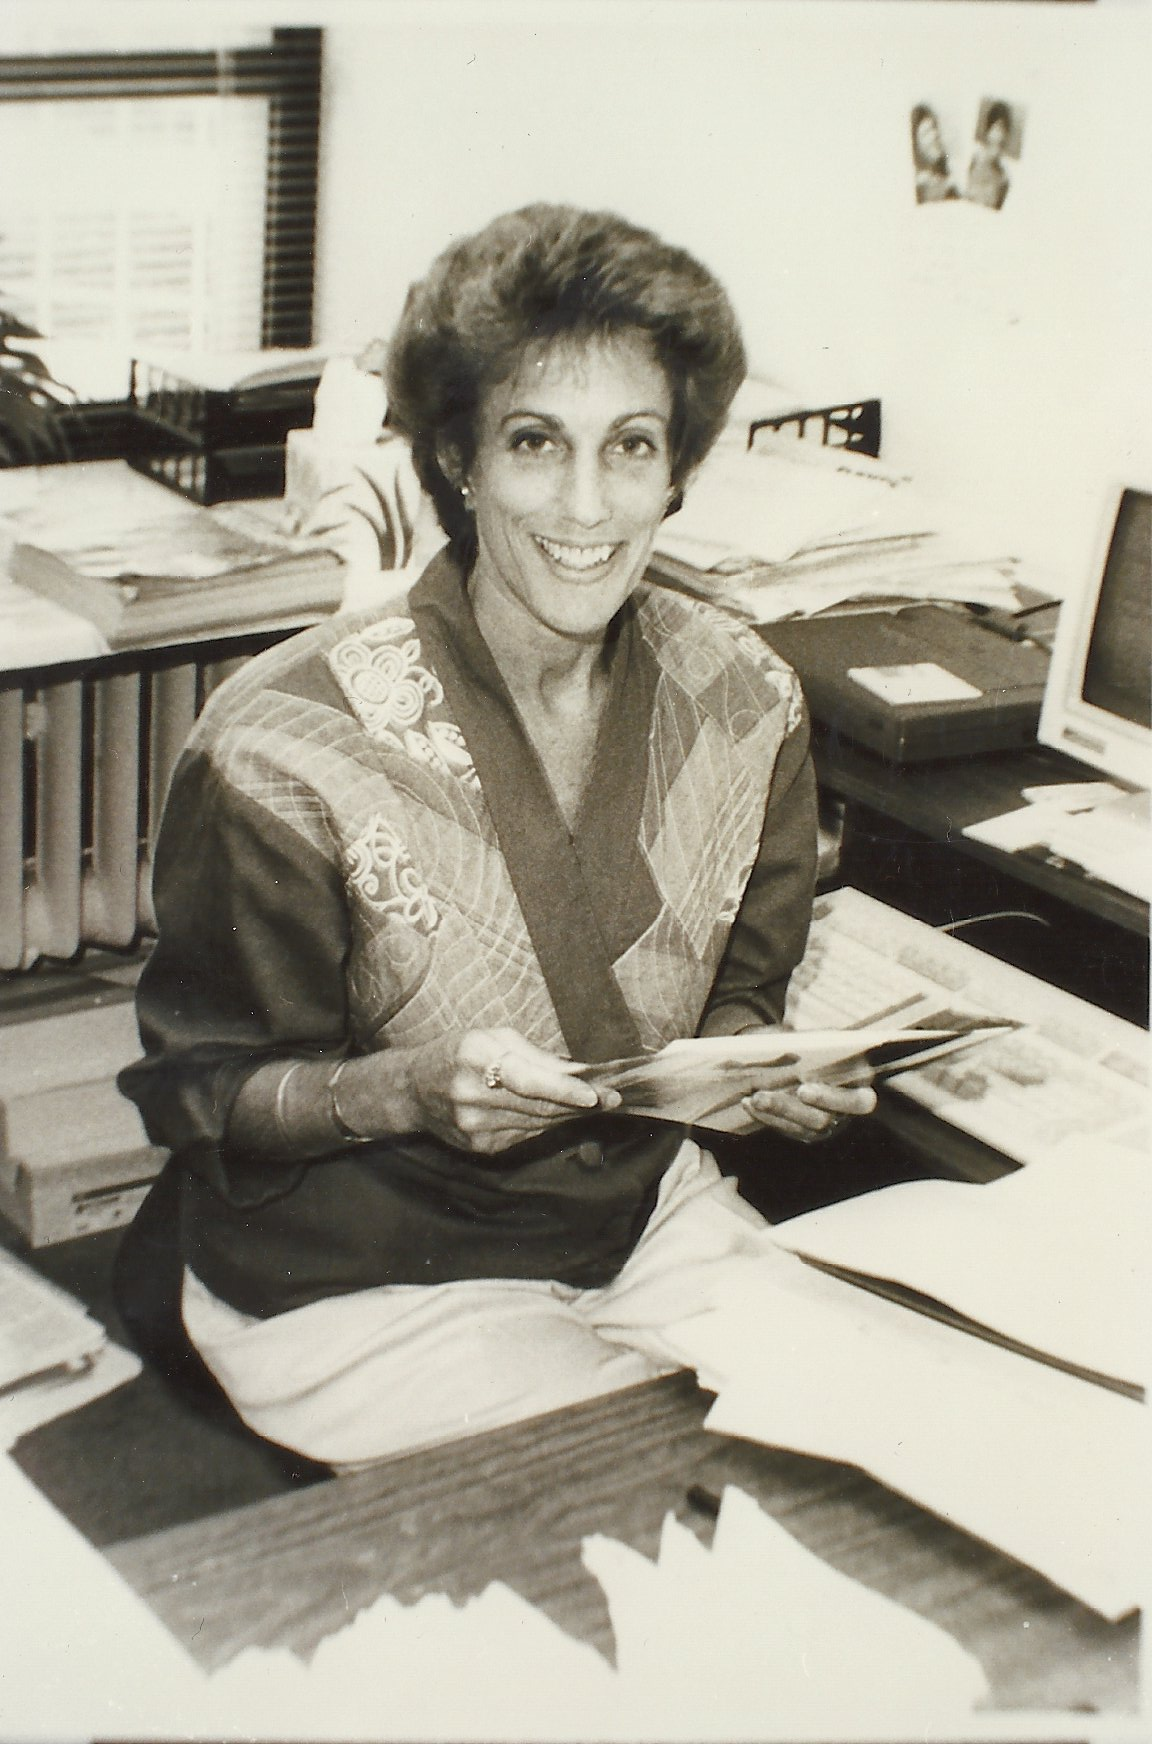 Ellen Bravo, pictured here, was a founding member of the Milwaukee chapter of 9to5 and became the national executive director in 1993.